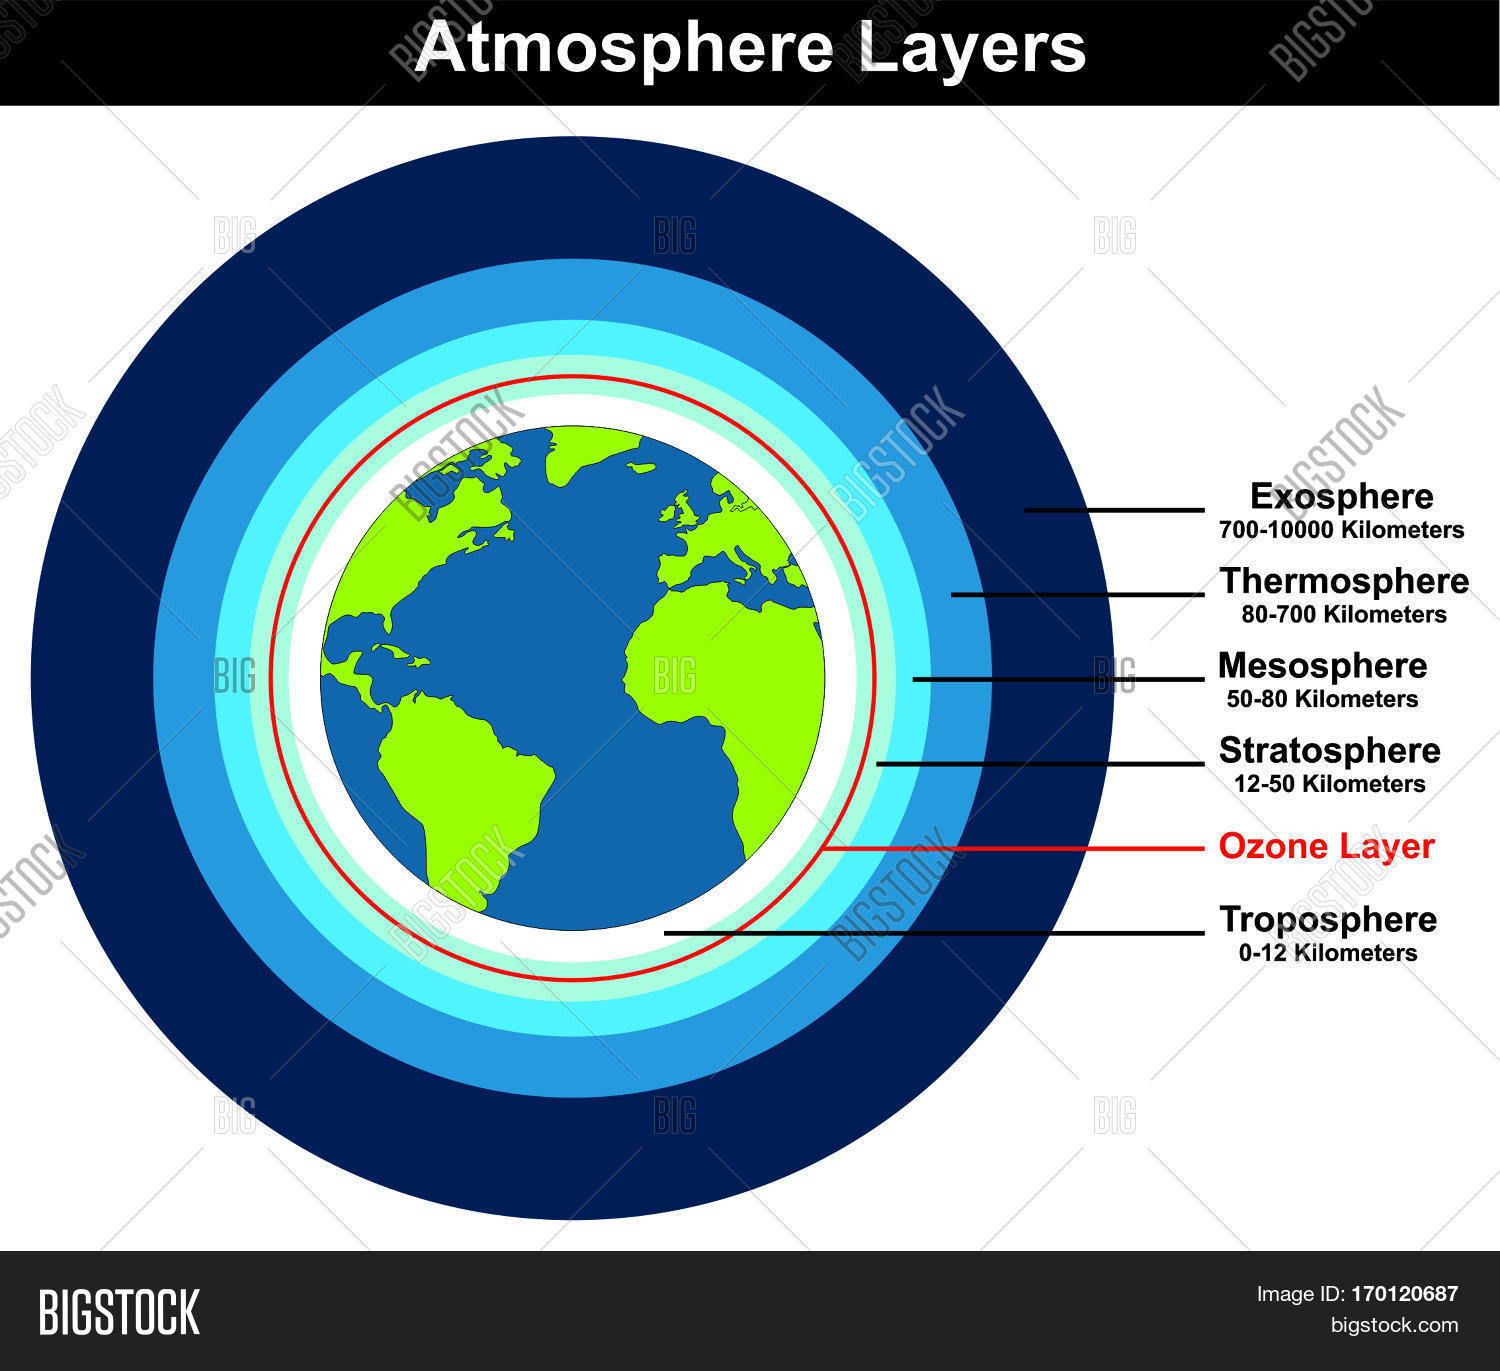 structure of the earth diagram to label 24 f hp atmosphere layers image and photo free trial bigstock